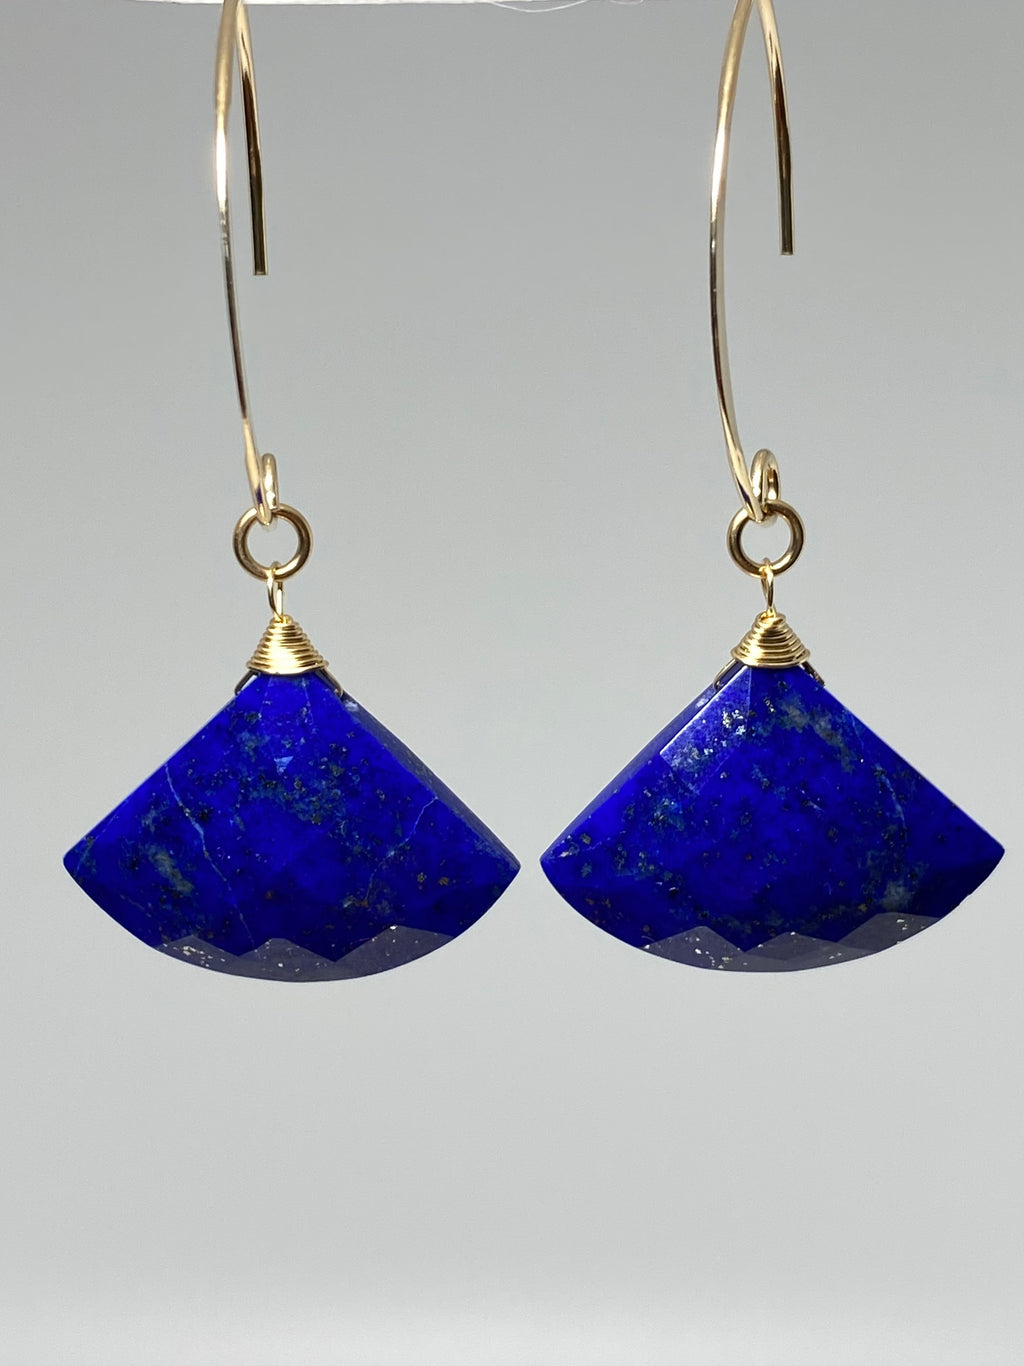 Pair of Lapis Earrings